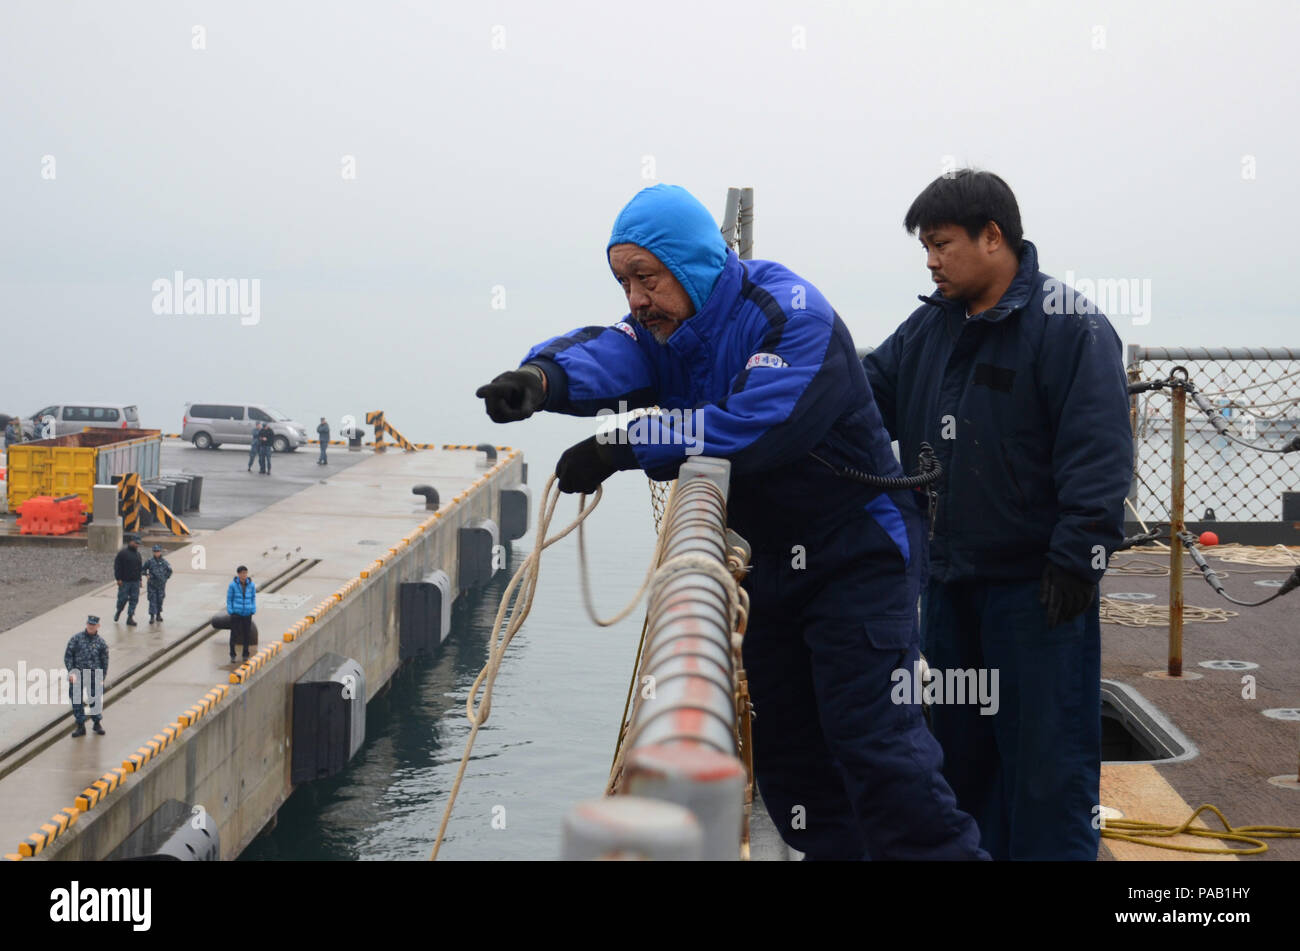 160304-N-WJ640-032 GWANGYANG, South Korea—Civilian mariner Robert Cheong (left) and civilian mariner Rejinan Barque communicate with pier side sailors to tie mooring lines on board dry cargo/ammunition ship USNS Sacagawea (T-AKE 2) here, March 4. The Sacagawea was one of three MPF ships that offloaded her cargo in support of Exercise Ssang Yong 16 (SY16), under the Exercise Freedom Banner 2016 (FB16) directive. Freedom Banner 2016, a Navy and Marine Corps deployment and offload/backload exercise that is nestled within SY16, brought multiple commands together to offload Maritime Prepositioning  Stock Photo